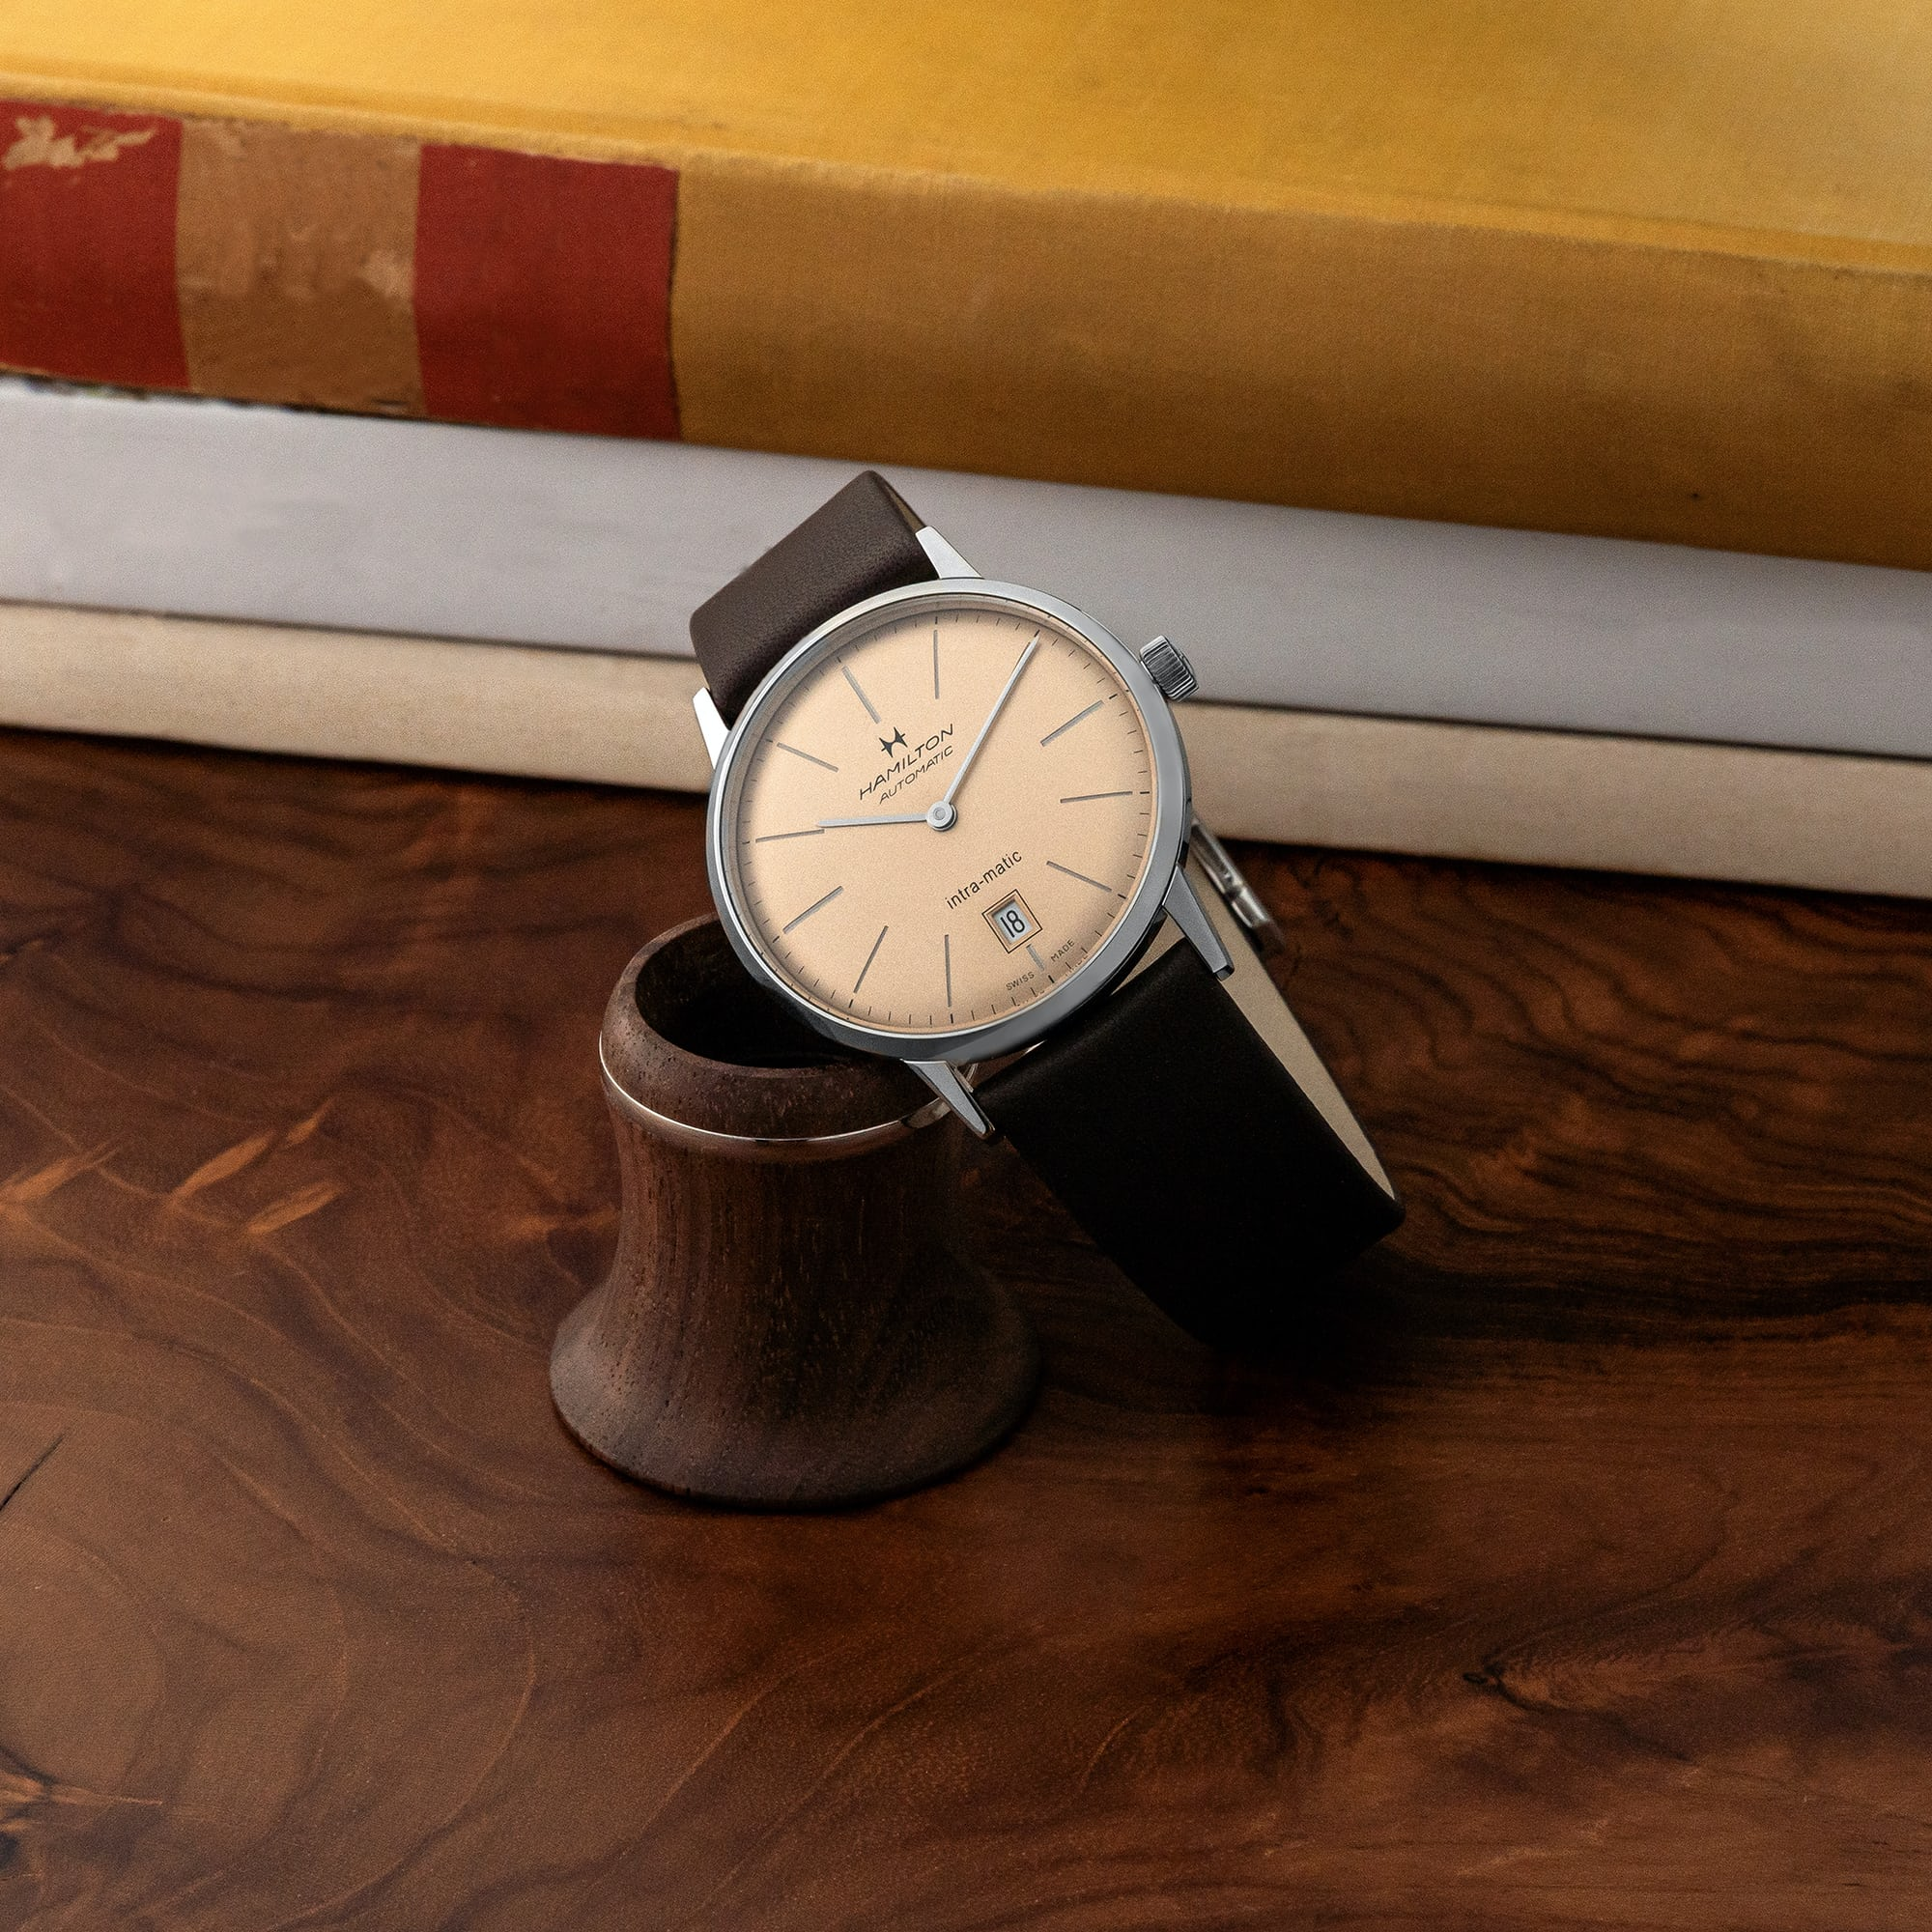 """<p><a href=""""https://shop.hodinkee.com/collections/hamilton/products/hamilton-intra-matic-38mm-champagne-dial?variant=32800428163147"""" rel=""""noopener"""" target=""""_blank""""><u>Hamilton Intra-Matic Automatic 38mm 'Champagne'</u></a></p>"""